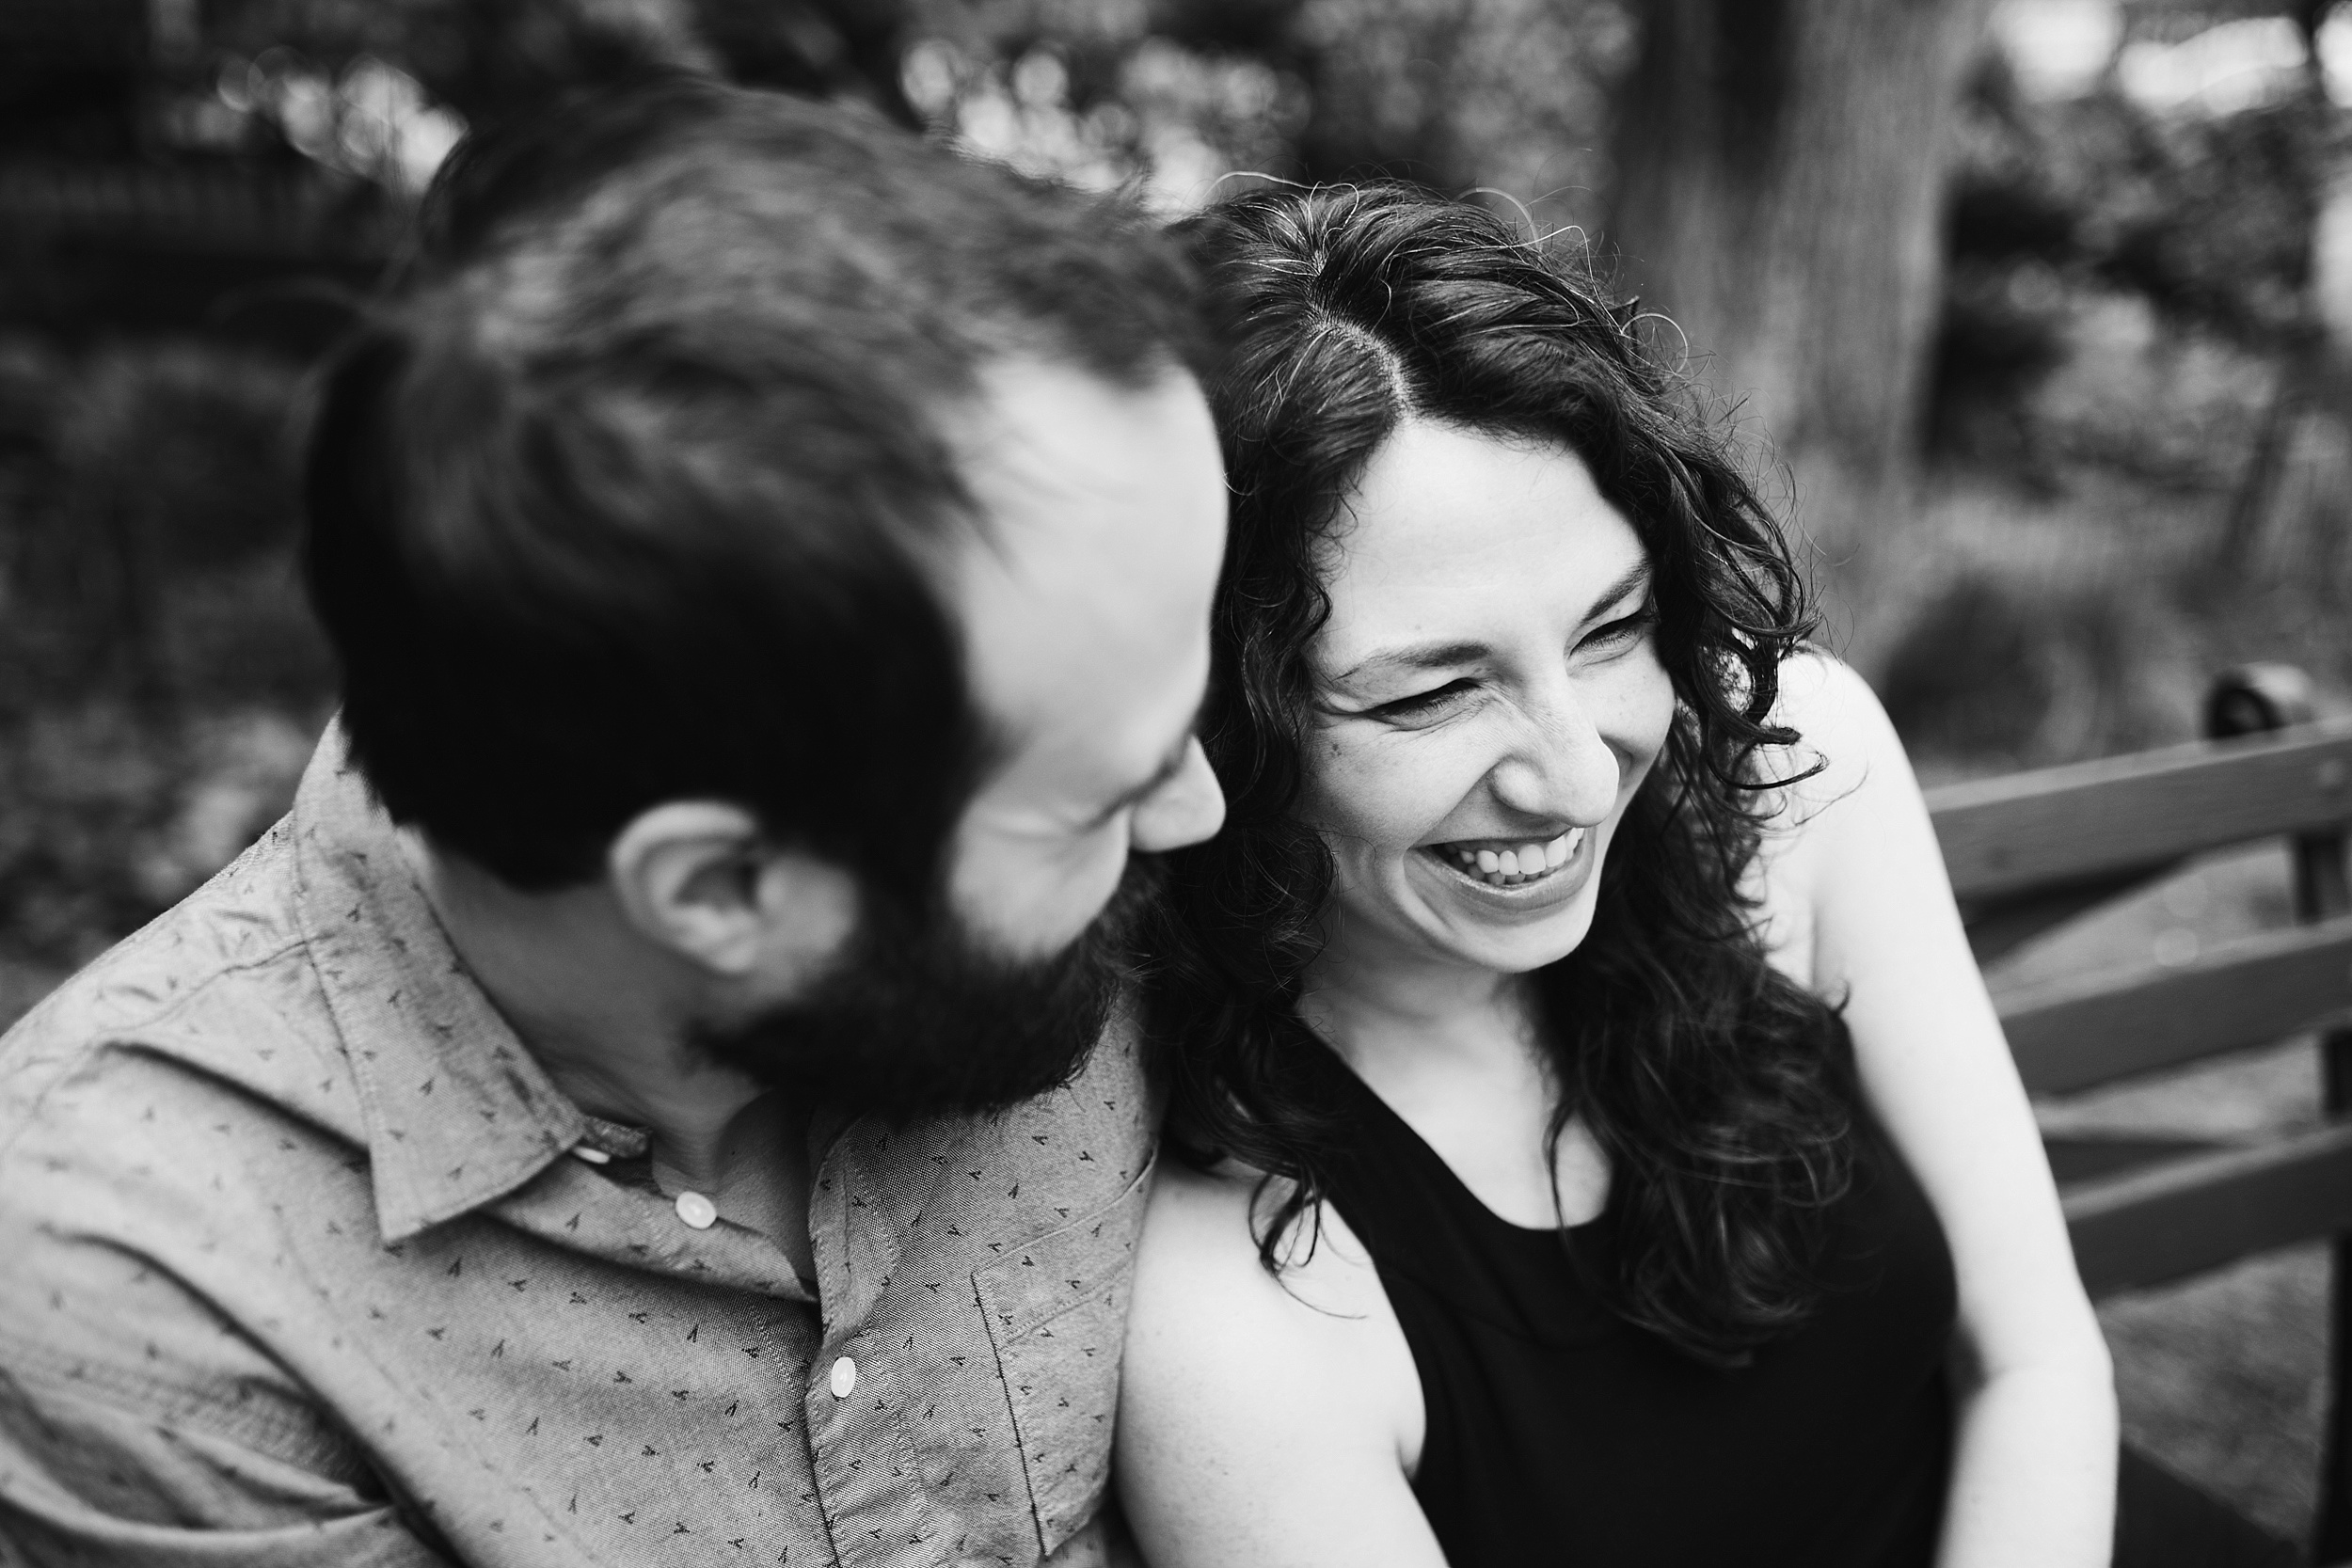 Allison-Sullivan-Brooklyn-Cobble-Hill-Engagement-Session_05.JPG